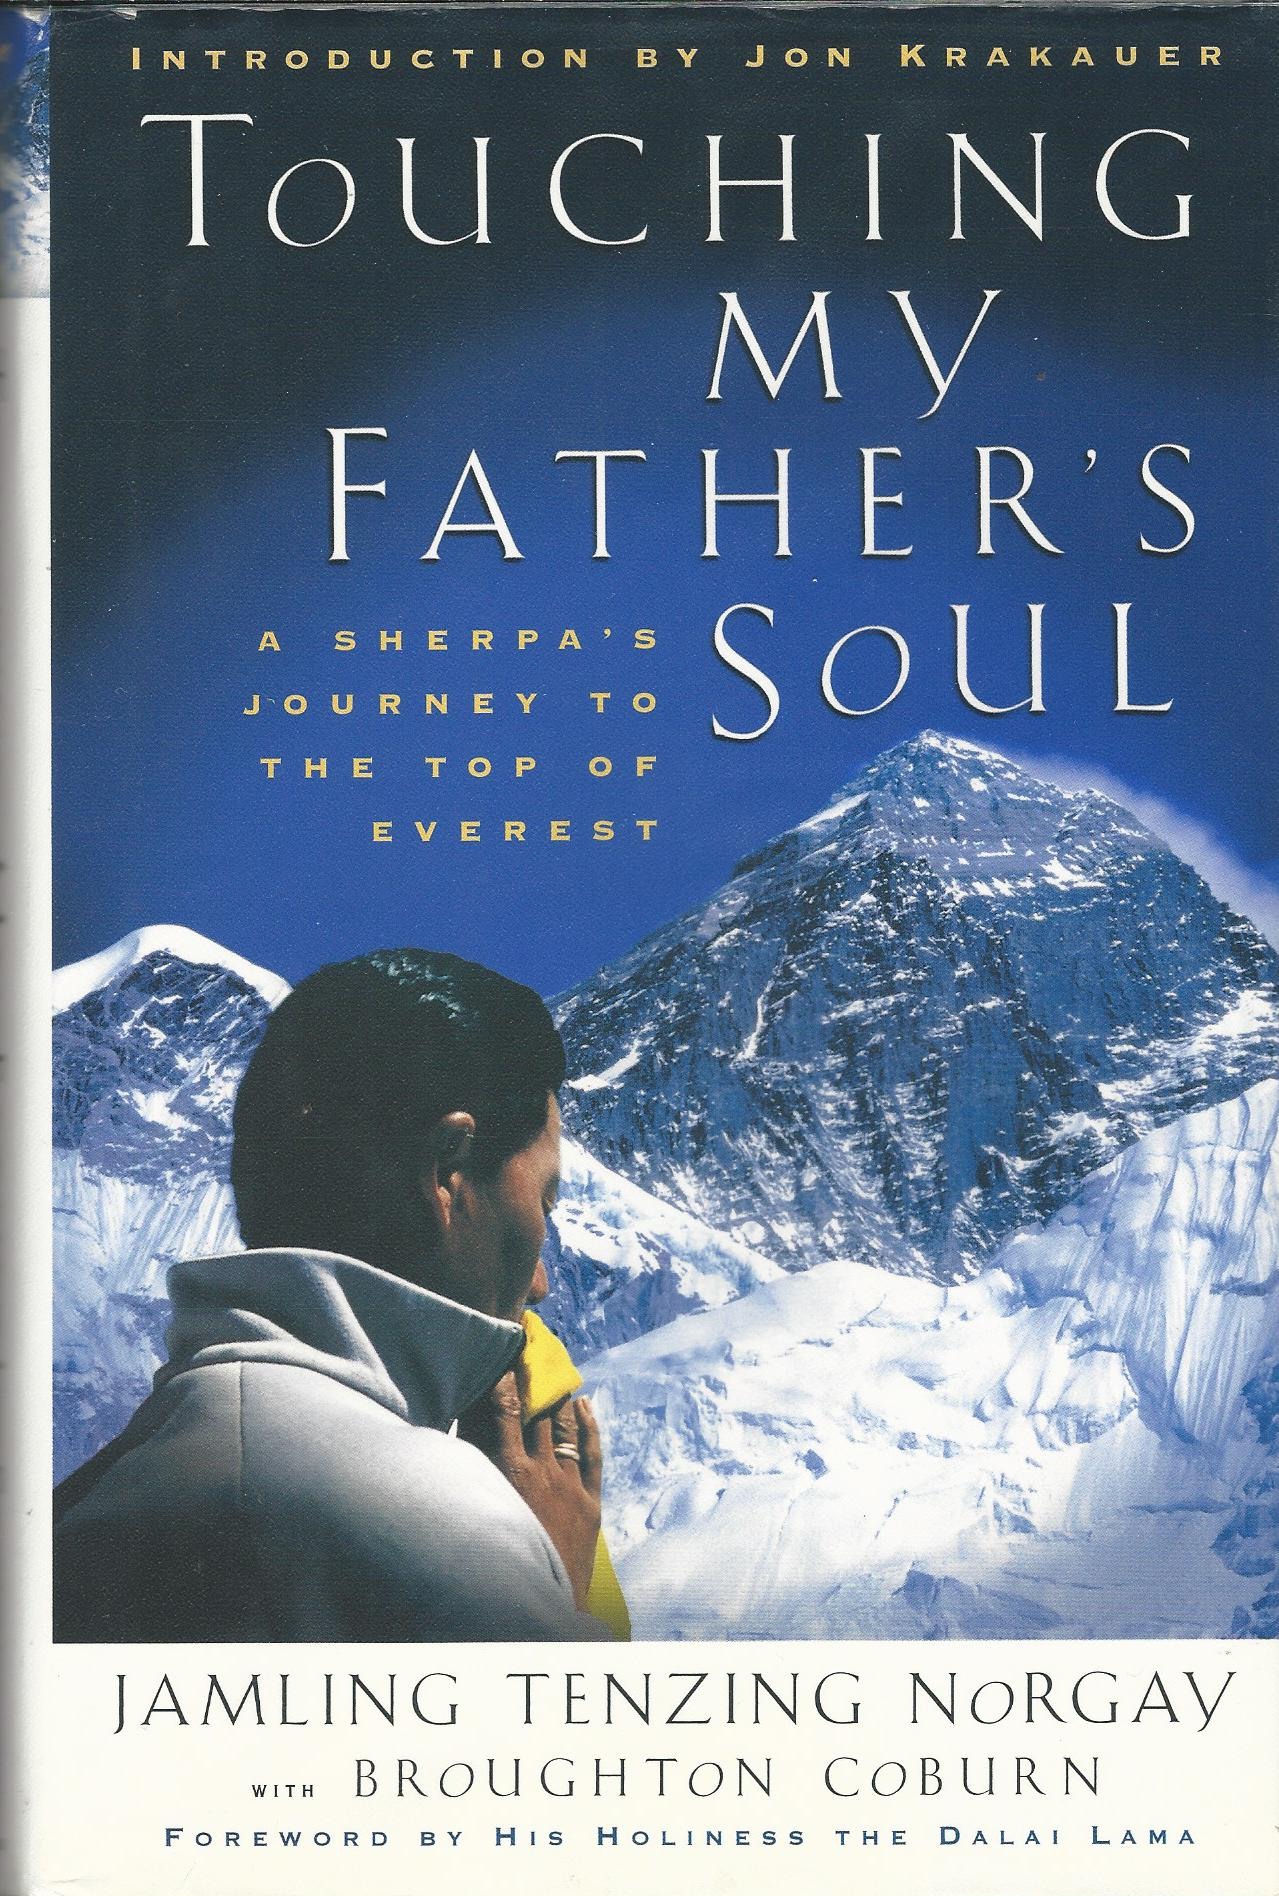 Image for Touching My Father's Soul: A Sherpa's Journey to the Top of Everest.